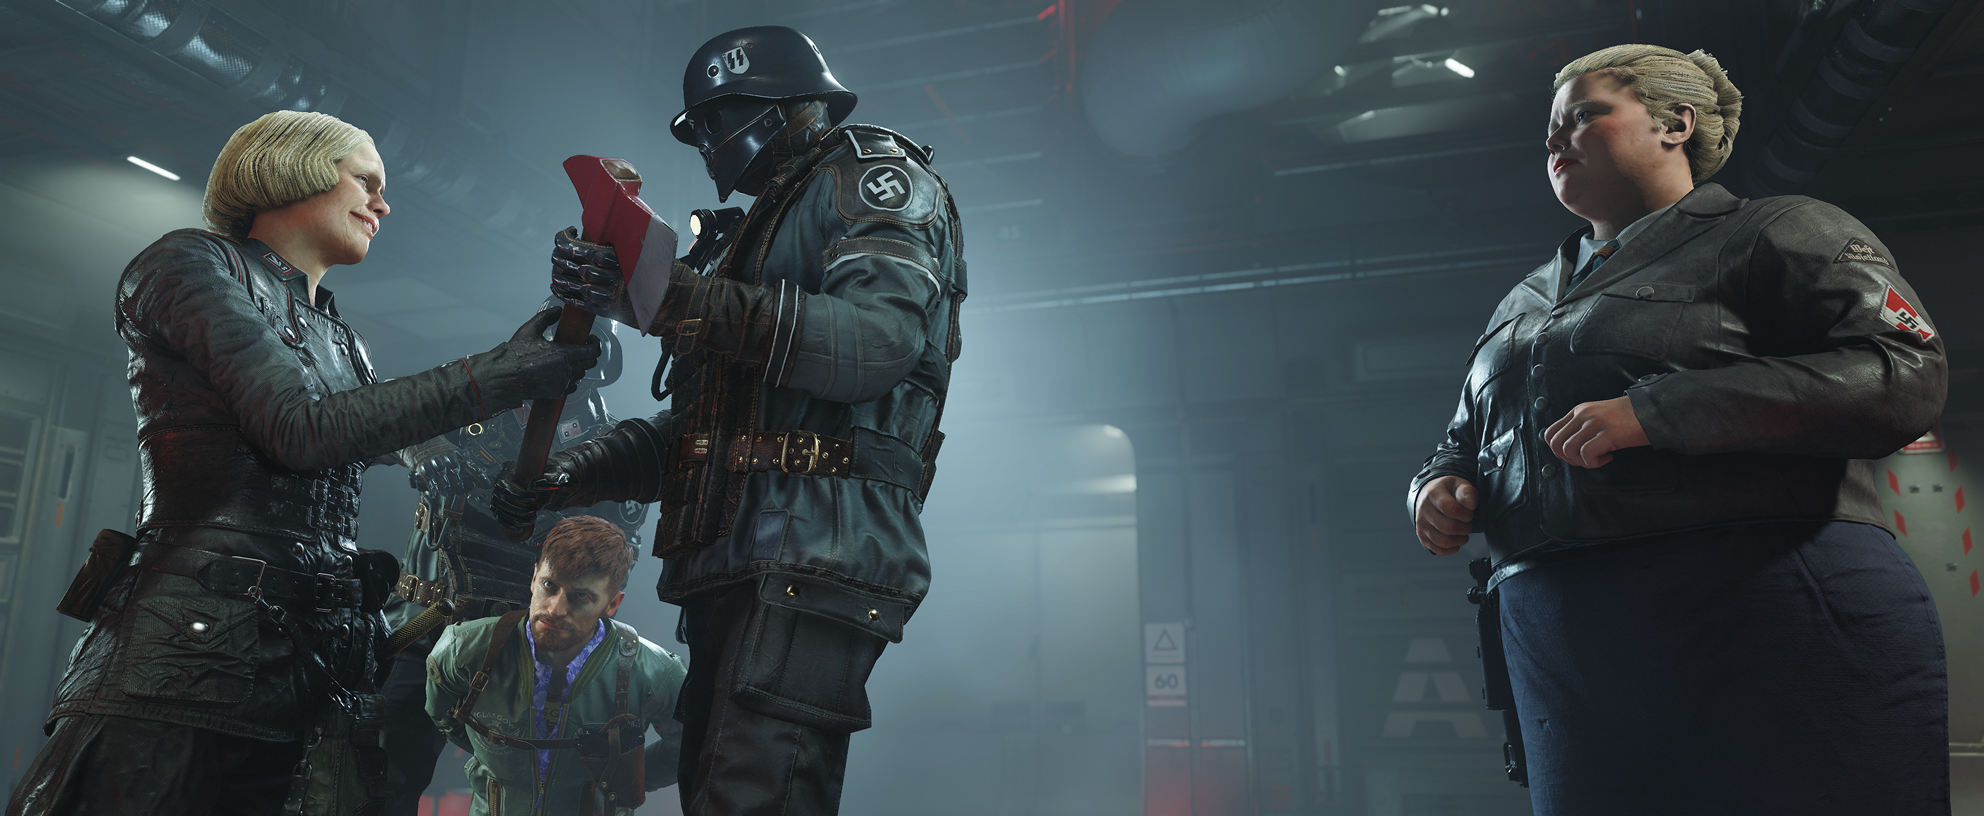 Wolfenstein 2 - The New Colossus - Engel